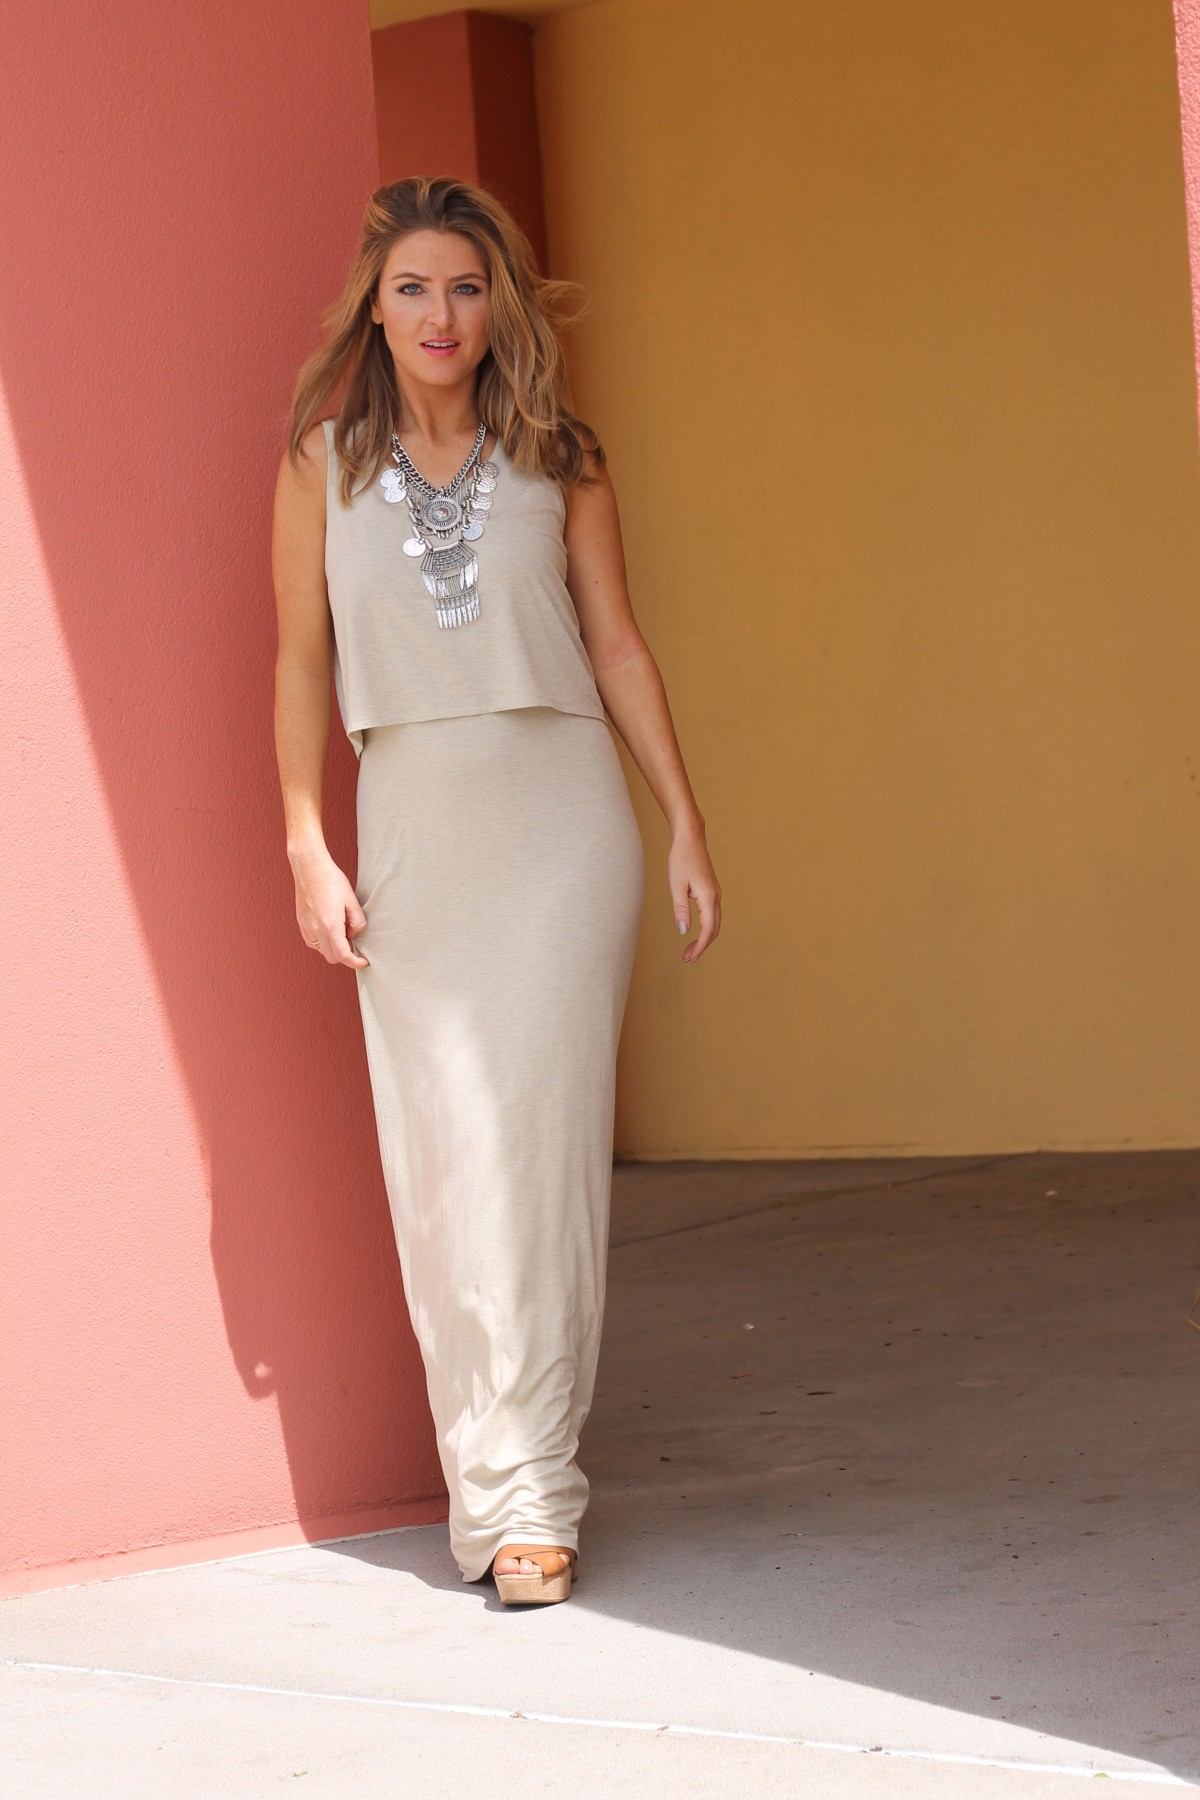 Amber from every once in a style in a charming charlie nude maxi dress and statement necklace